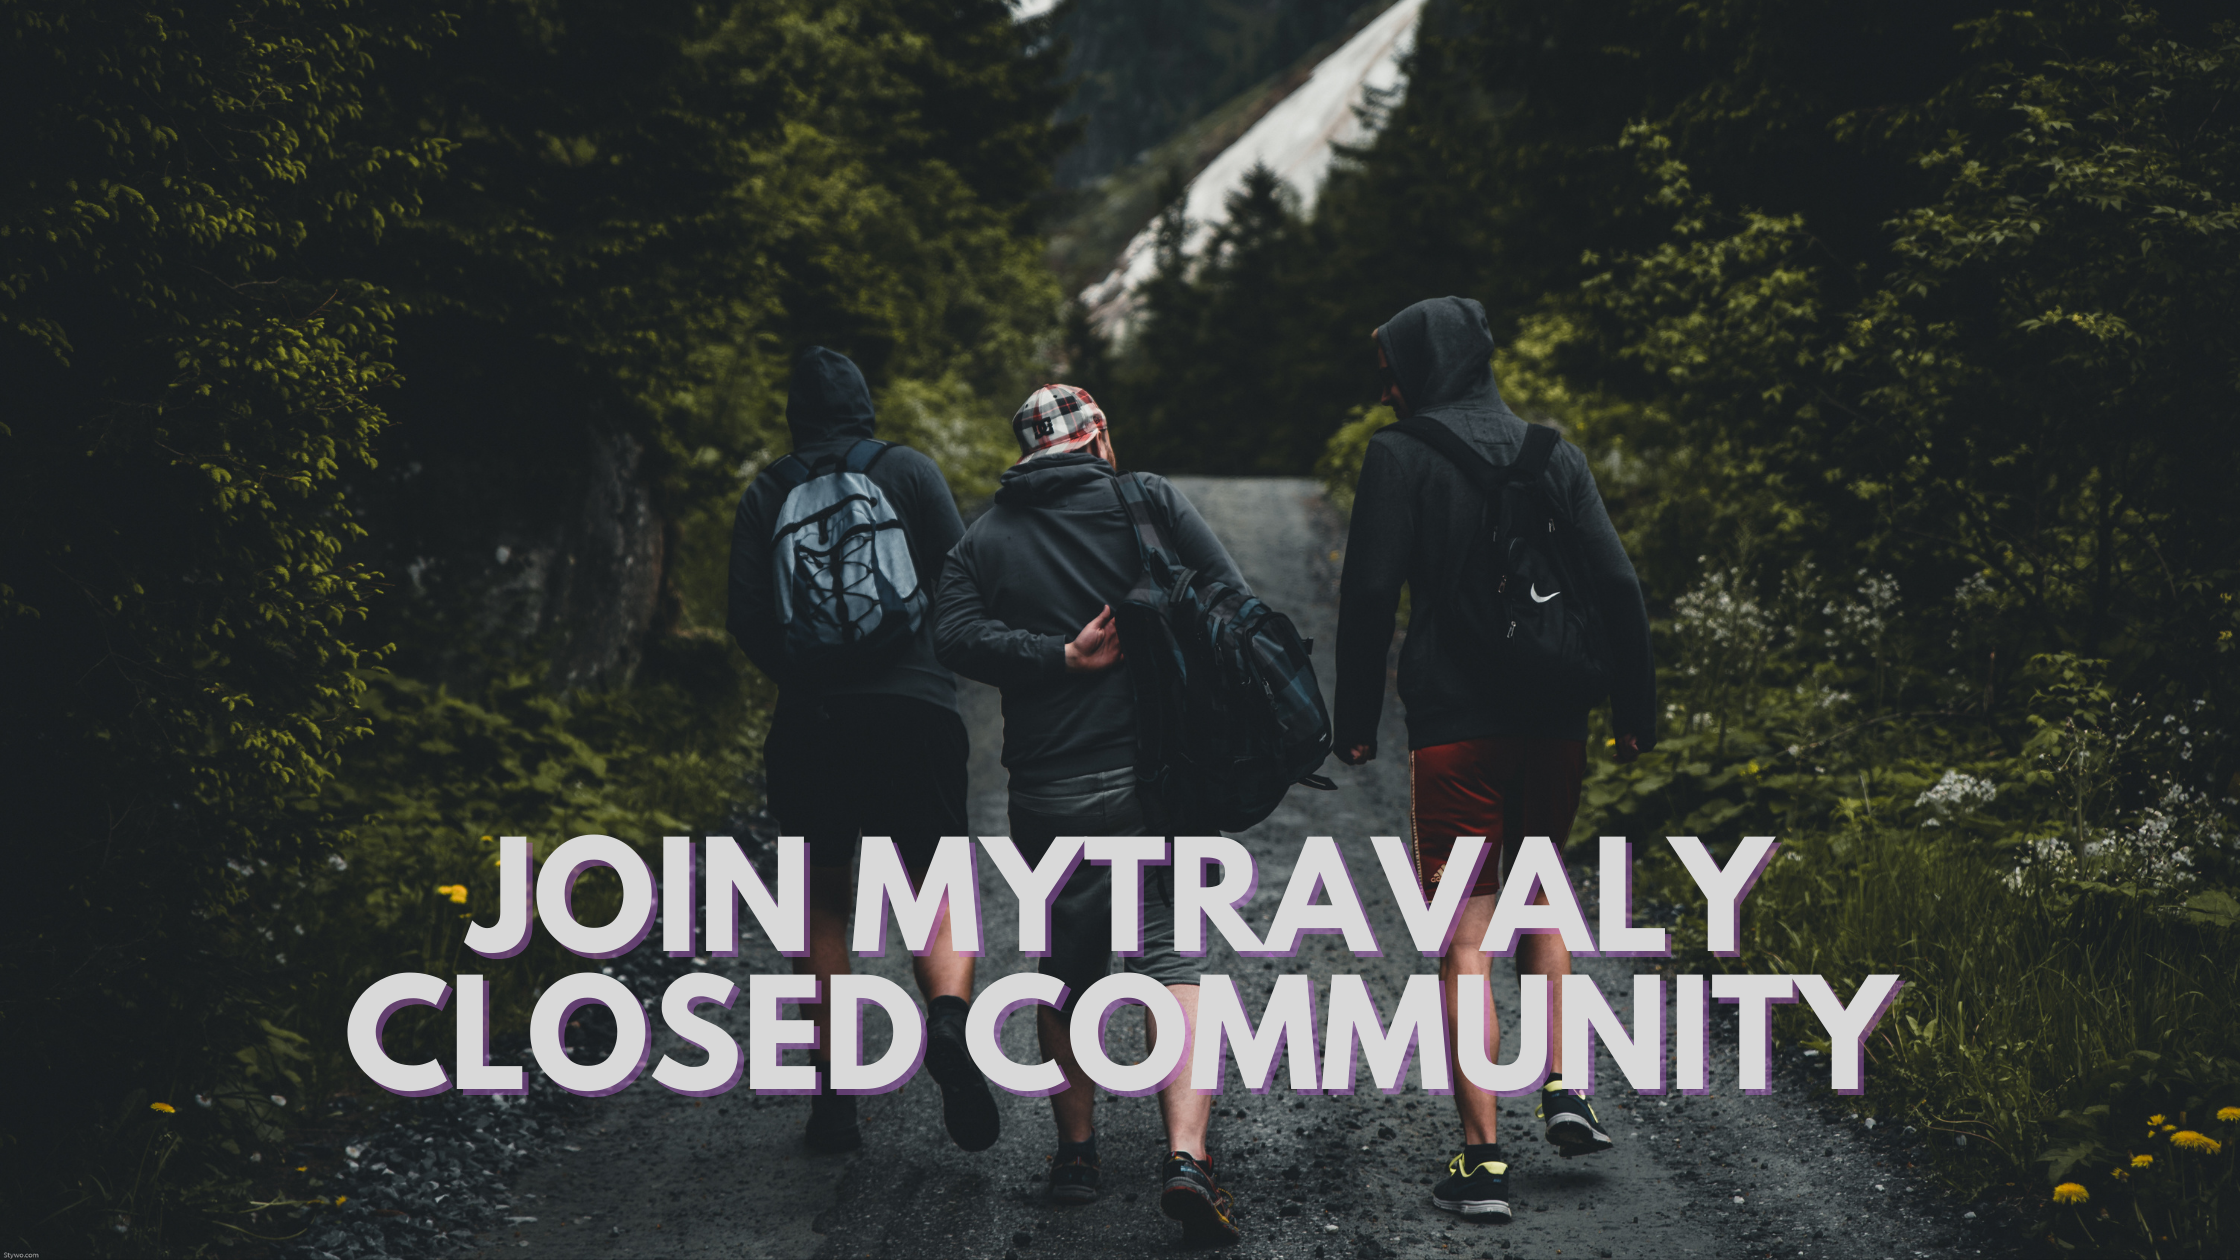 Benefits of Joining MyTravaly Closed Community